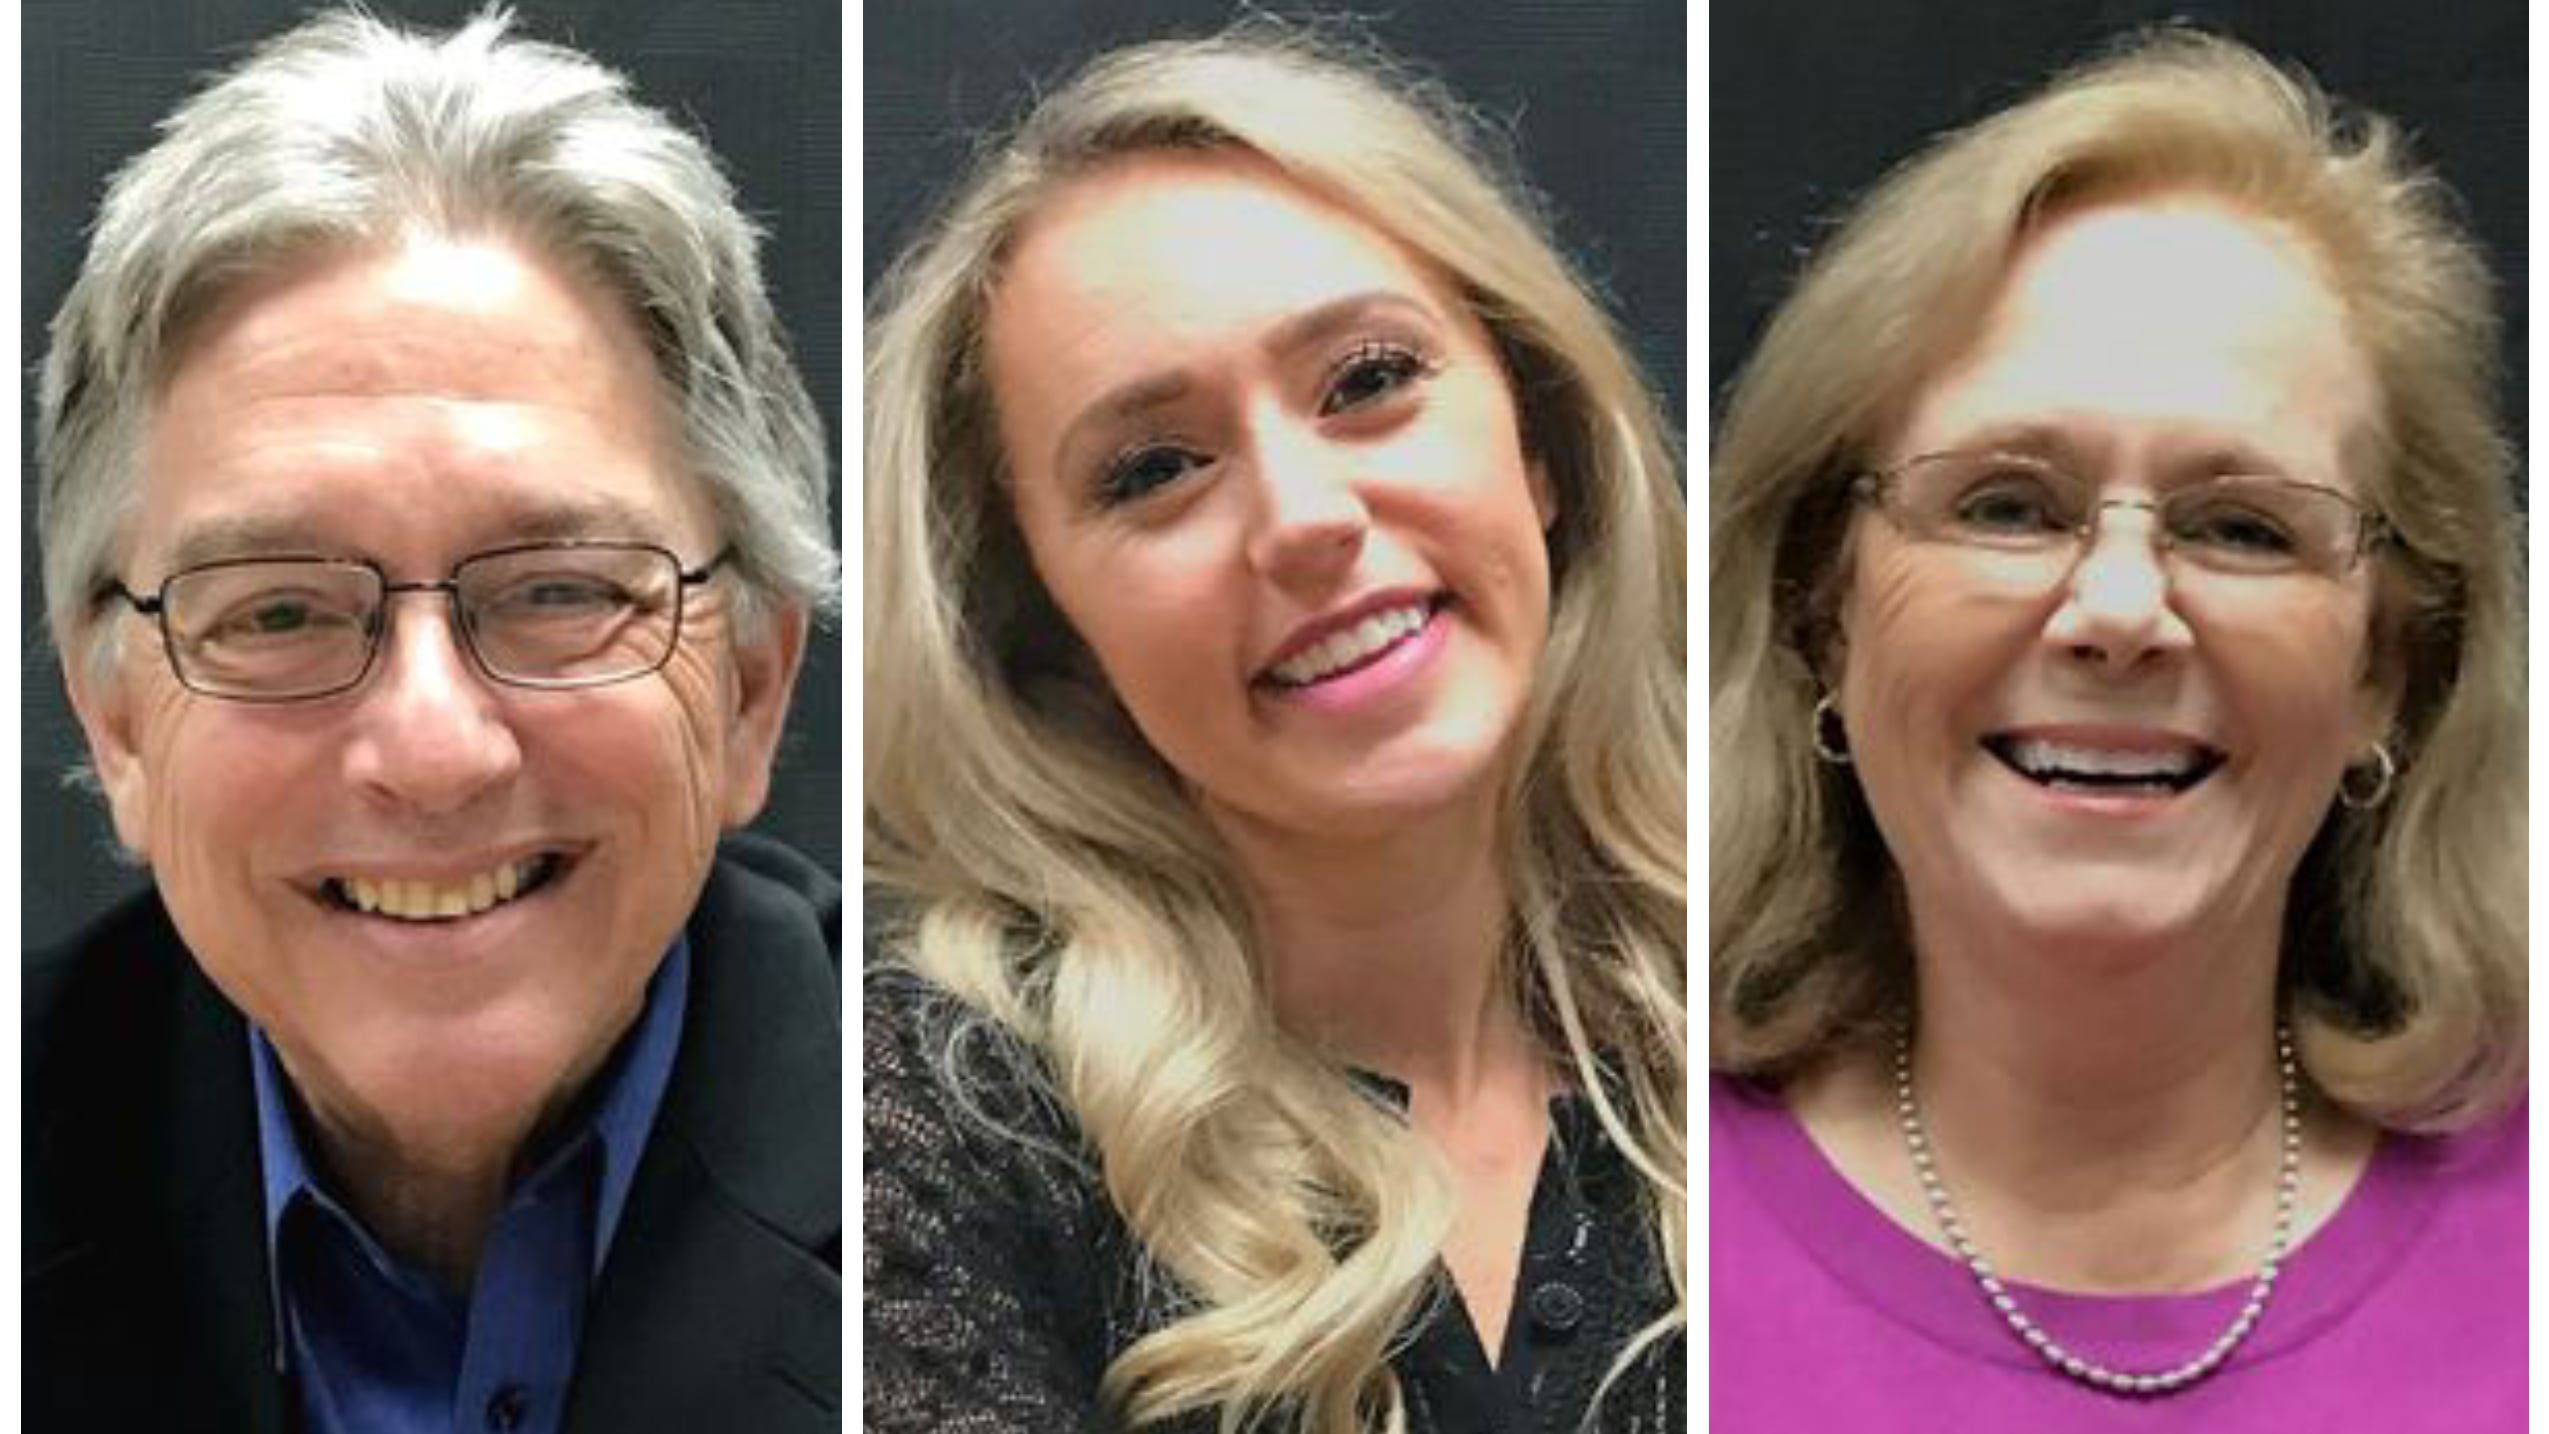 Left to right: Michael Dacquisto, Erin Resner and Kristen Schreder on tuesday, Nov. 6, 2018 won seats on the Redding City Council.